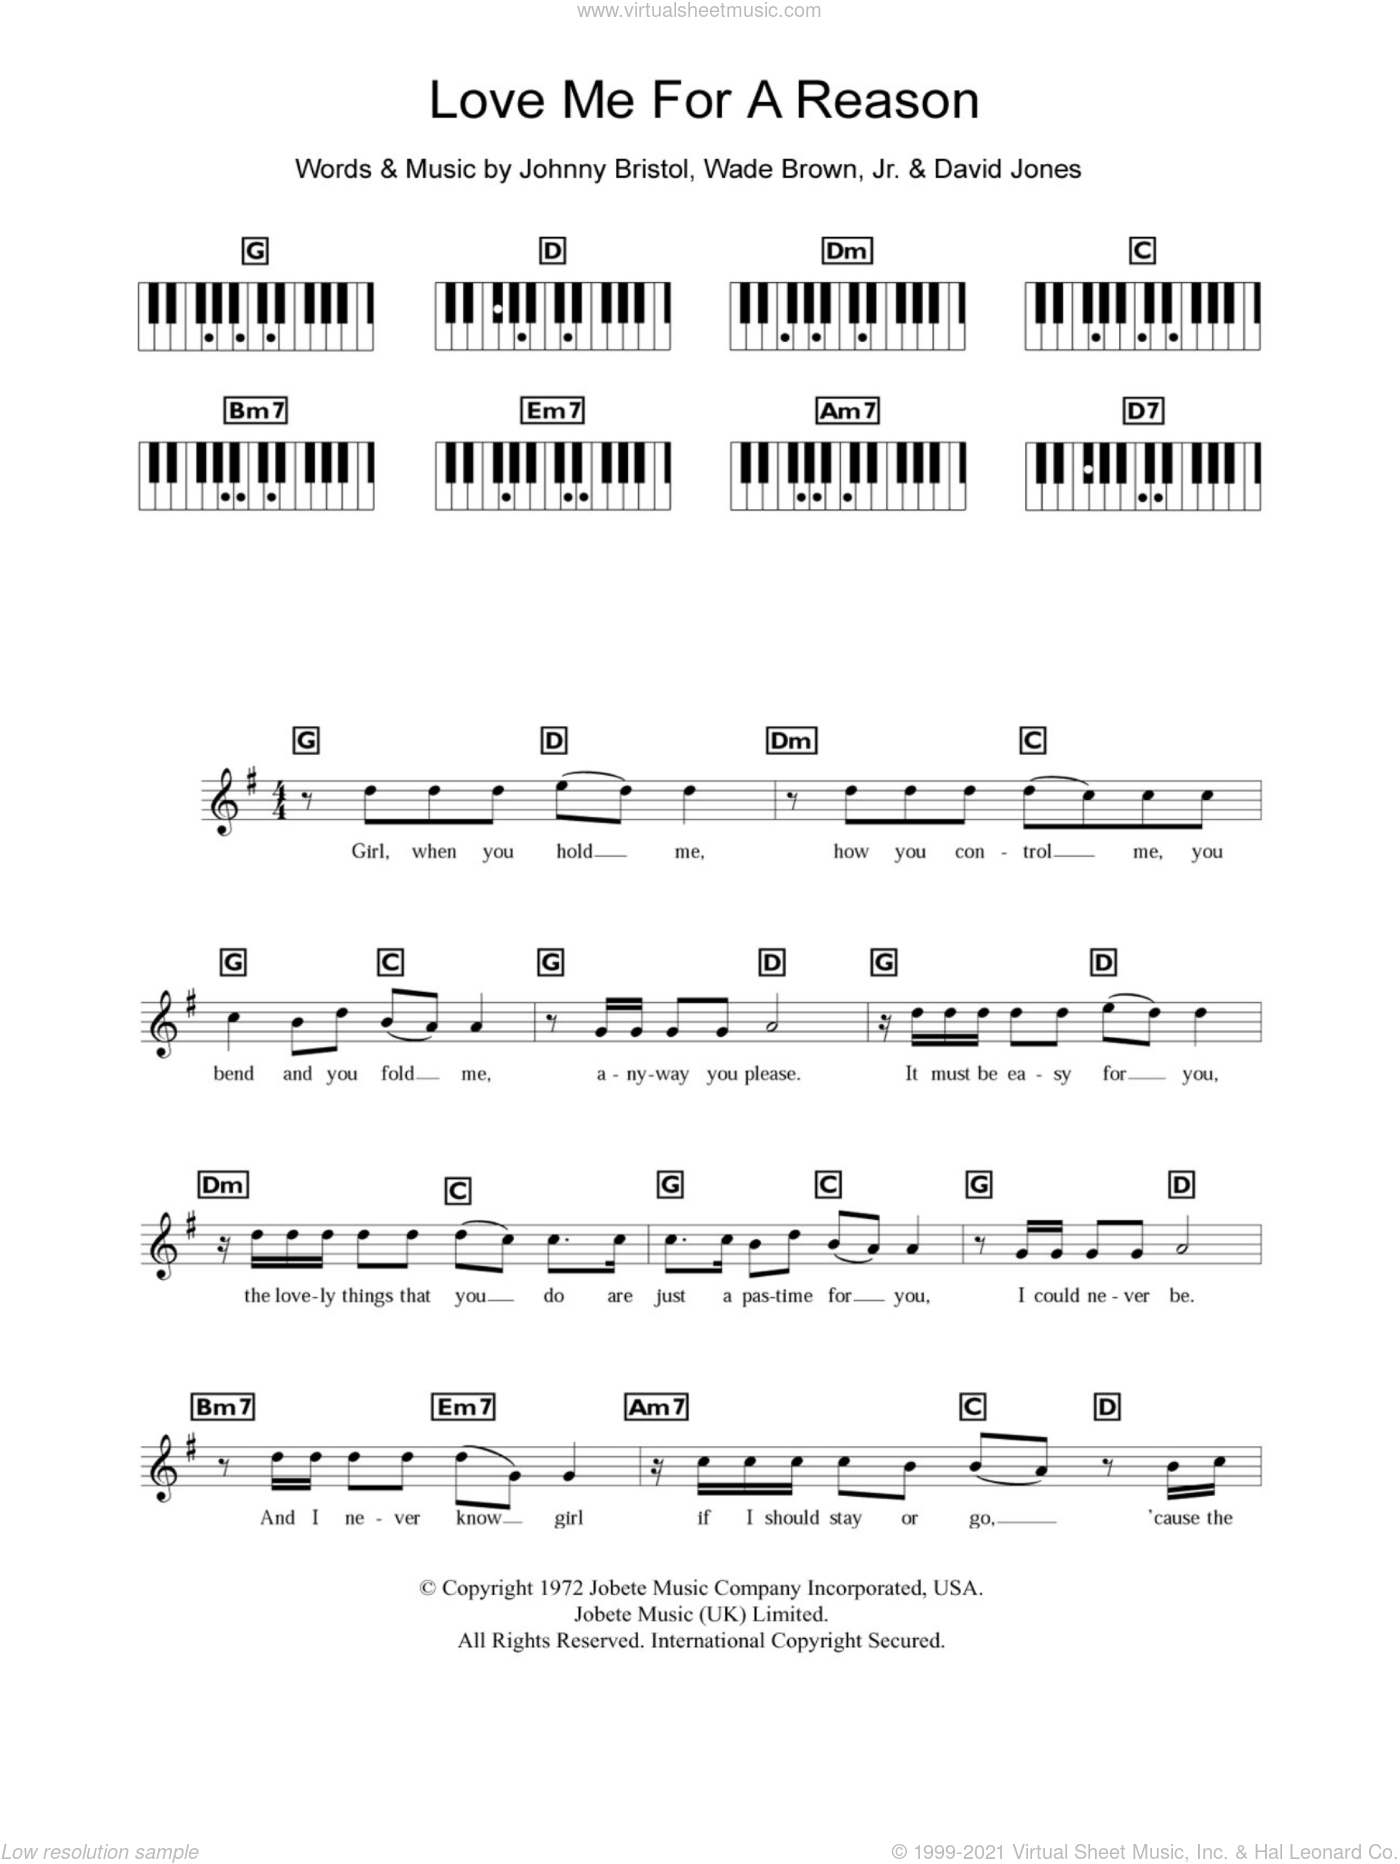 If you love me for me piano chords